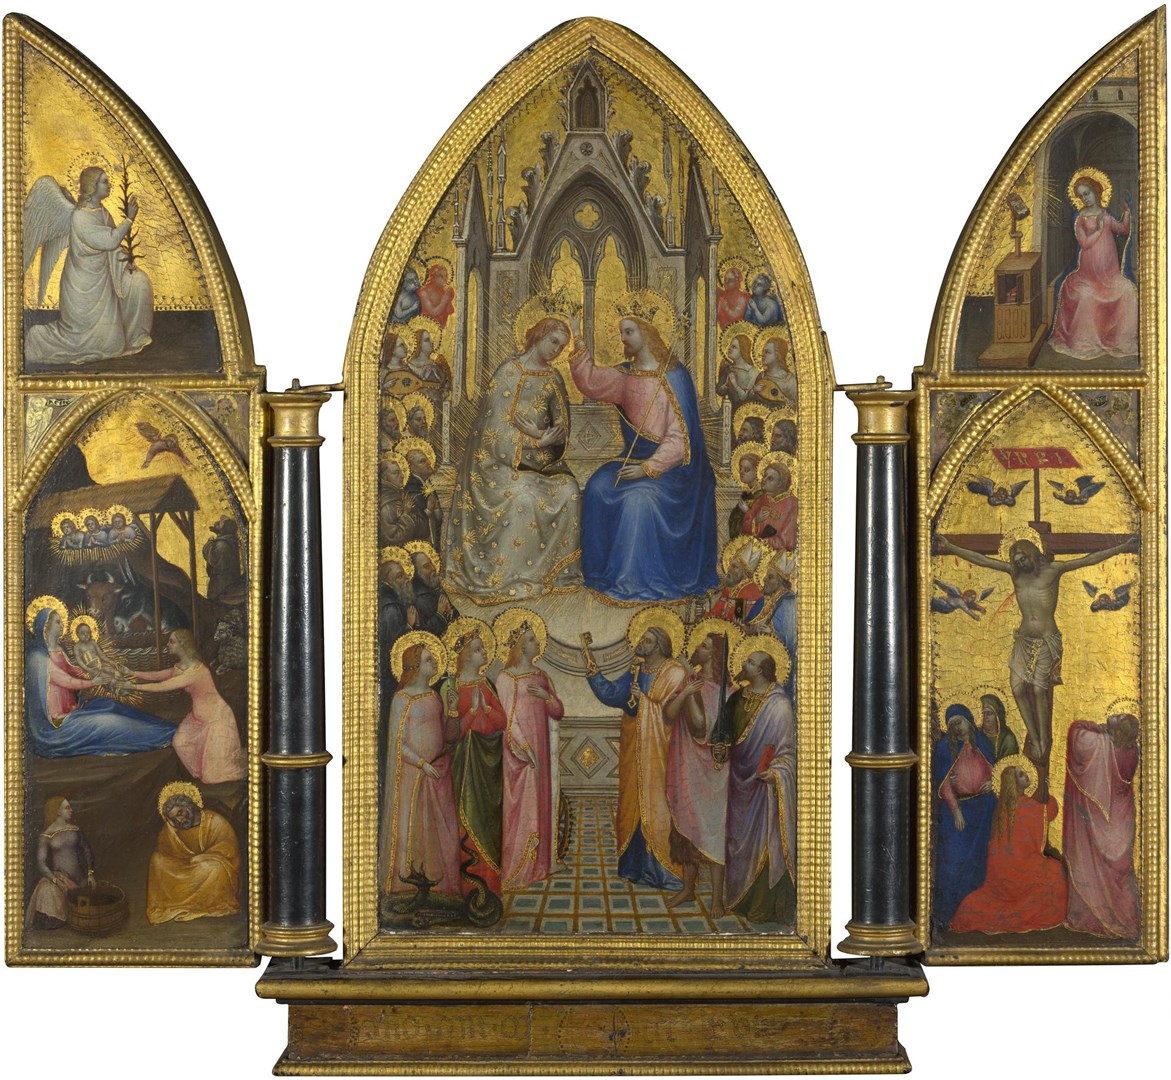 The Coronation of the Virgin, and Other Scenes by Giusto de' Menabuoi